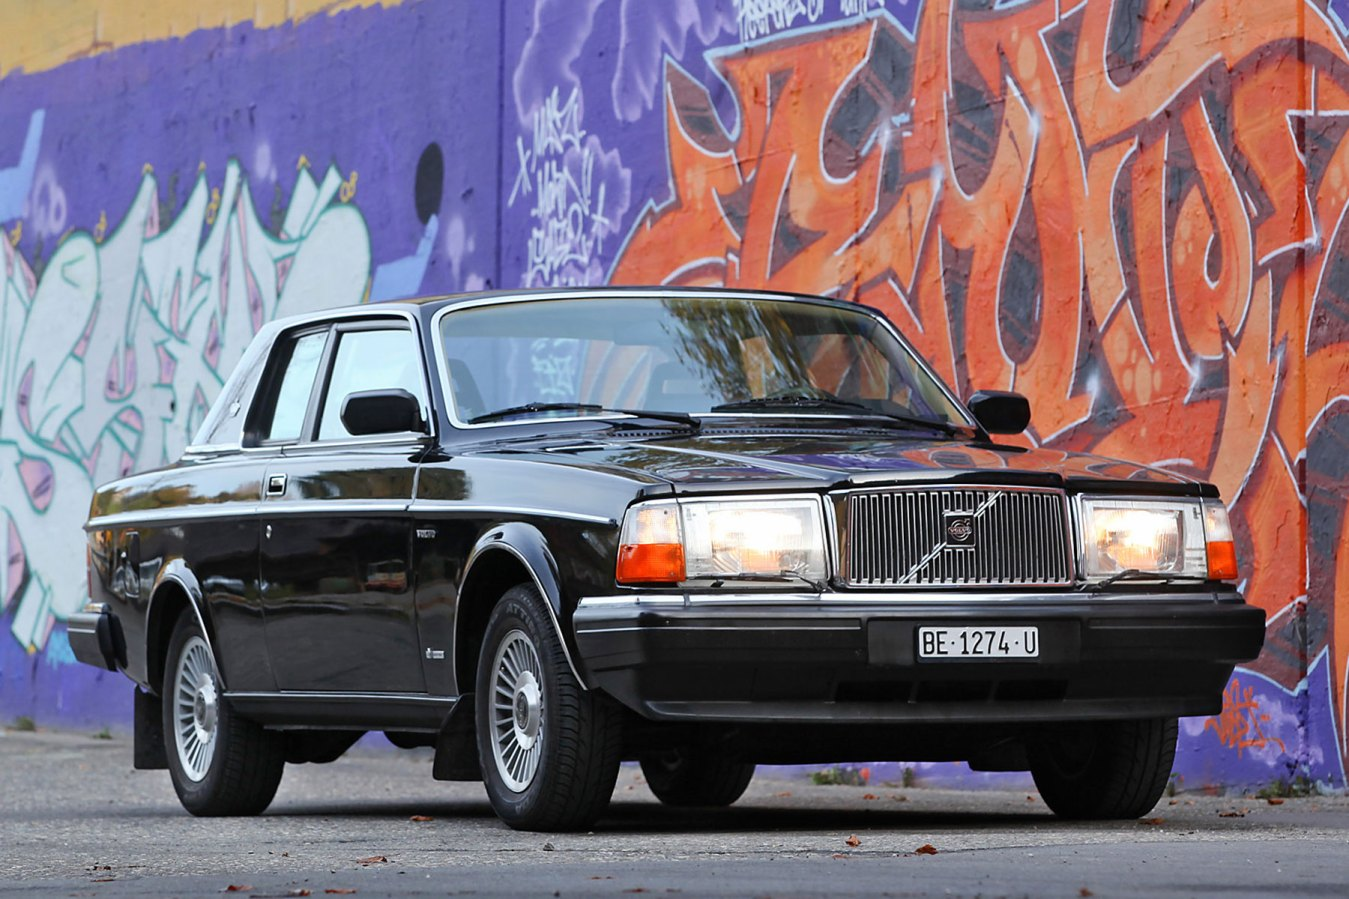 Bowie's old Volvo 262C Bertone Coupe sells for £160,000